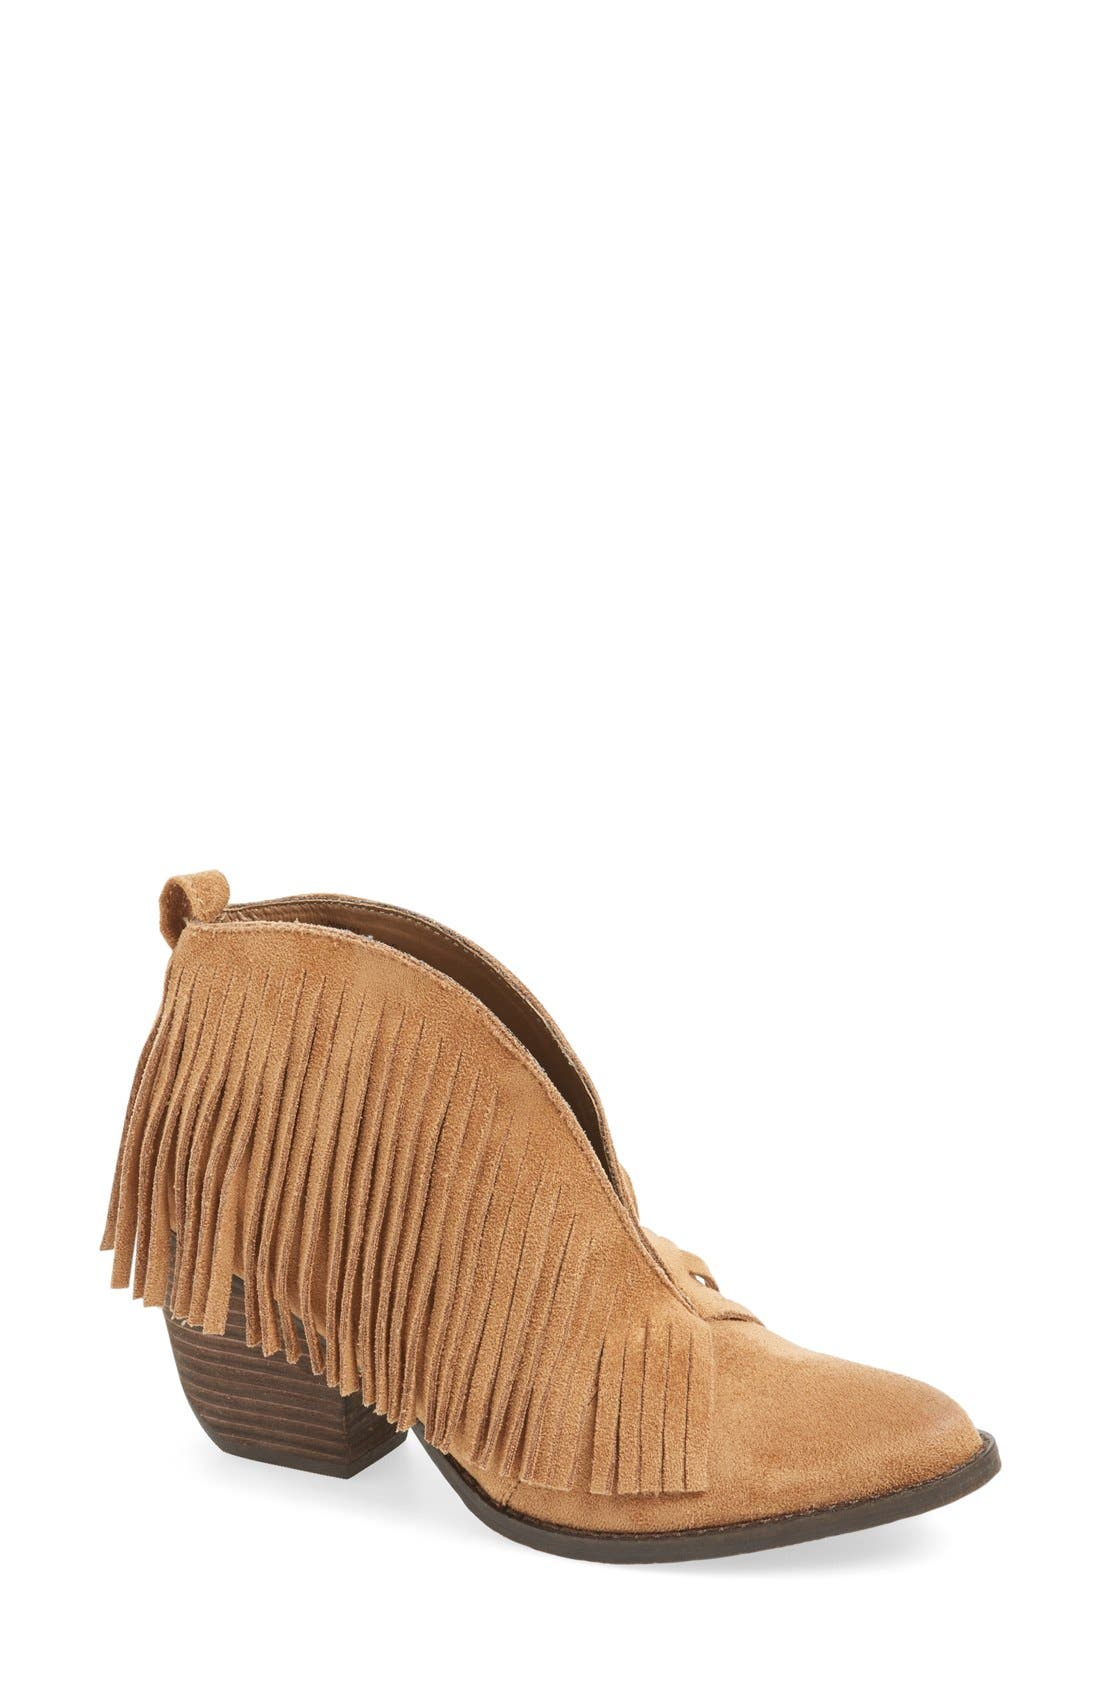 Alternate Image 1 Selected - Matisse Lambert Fringe Bootie (Women)